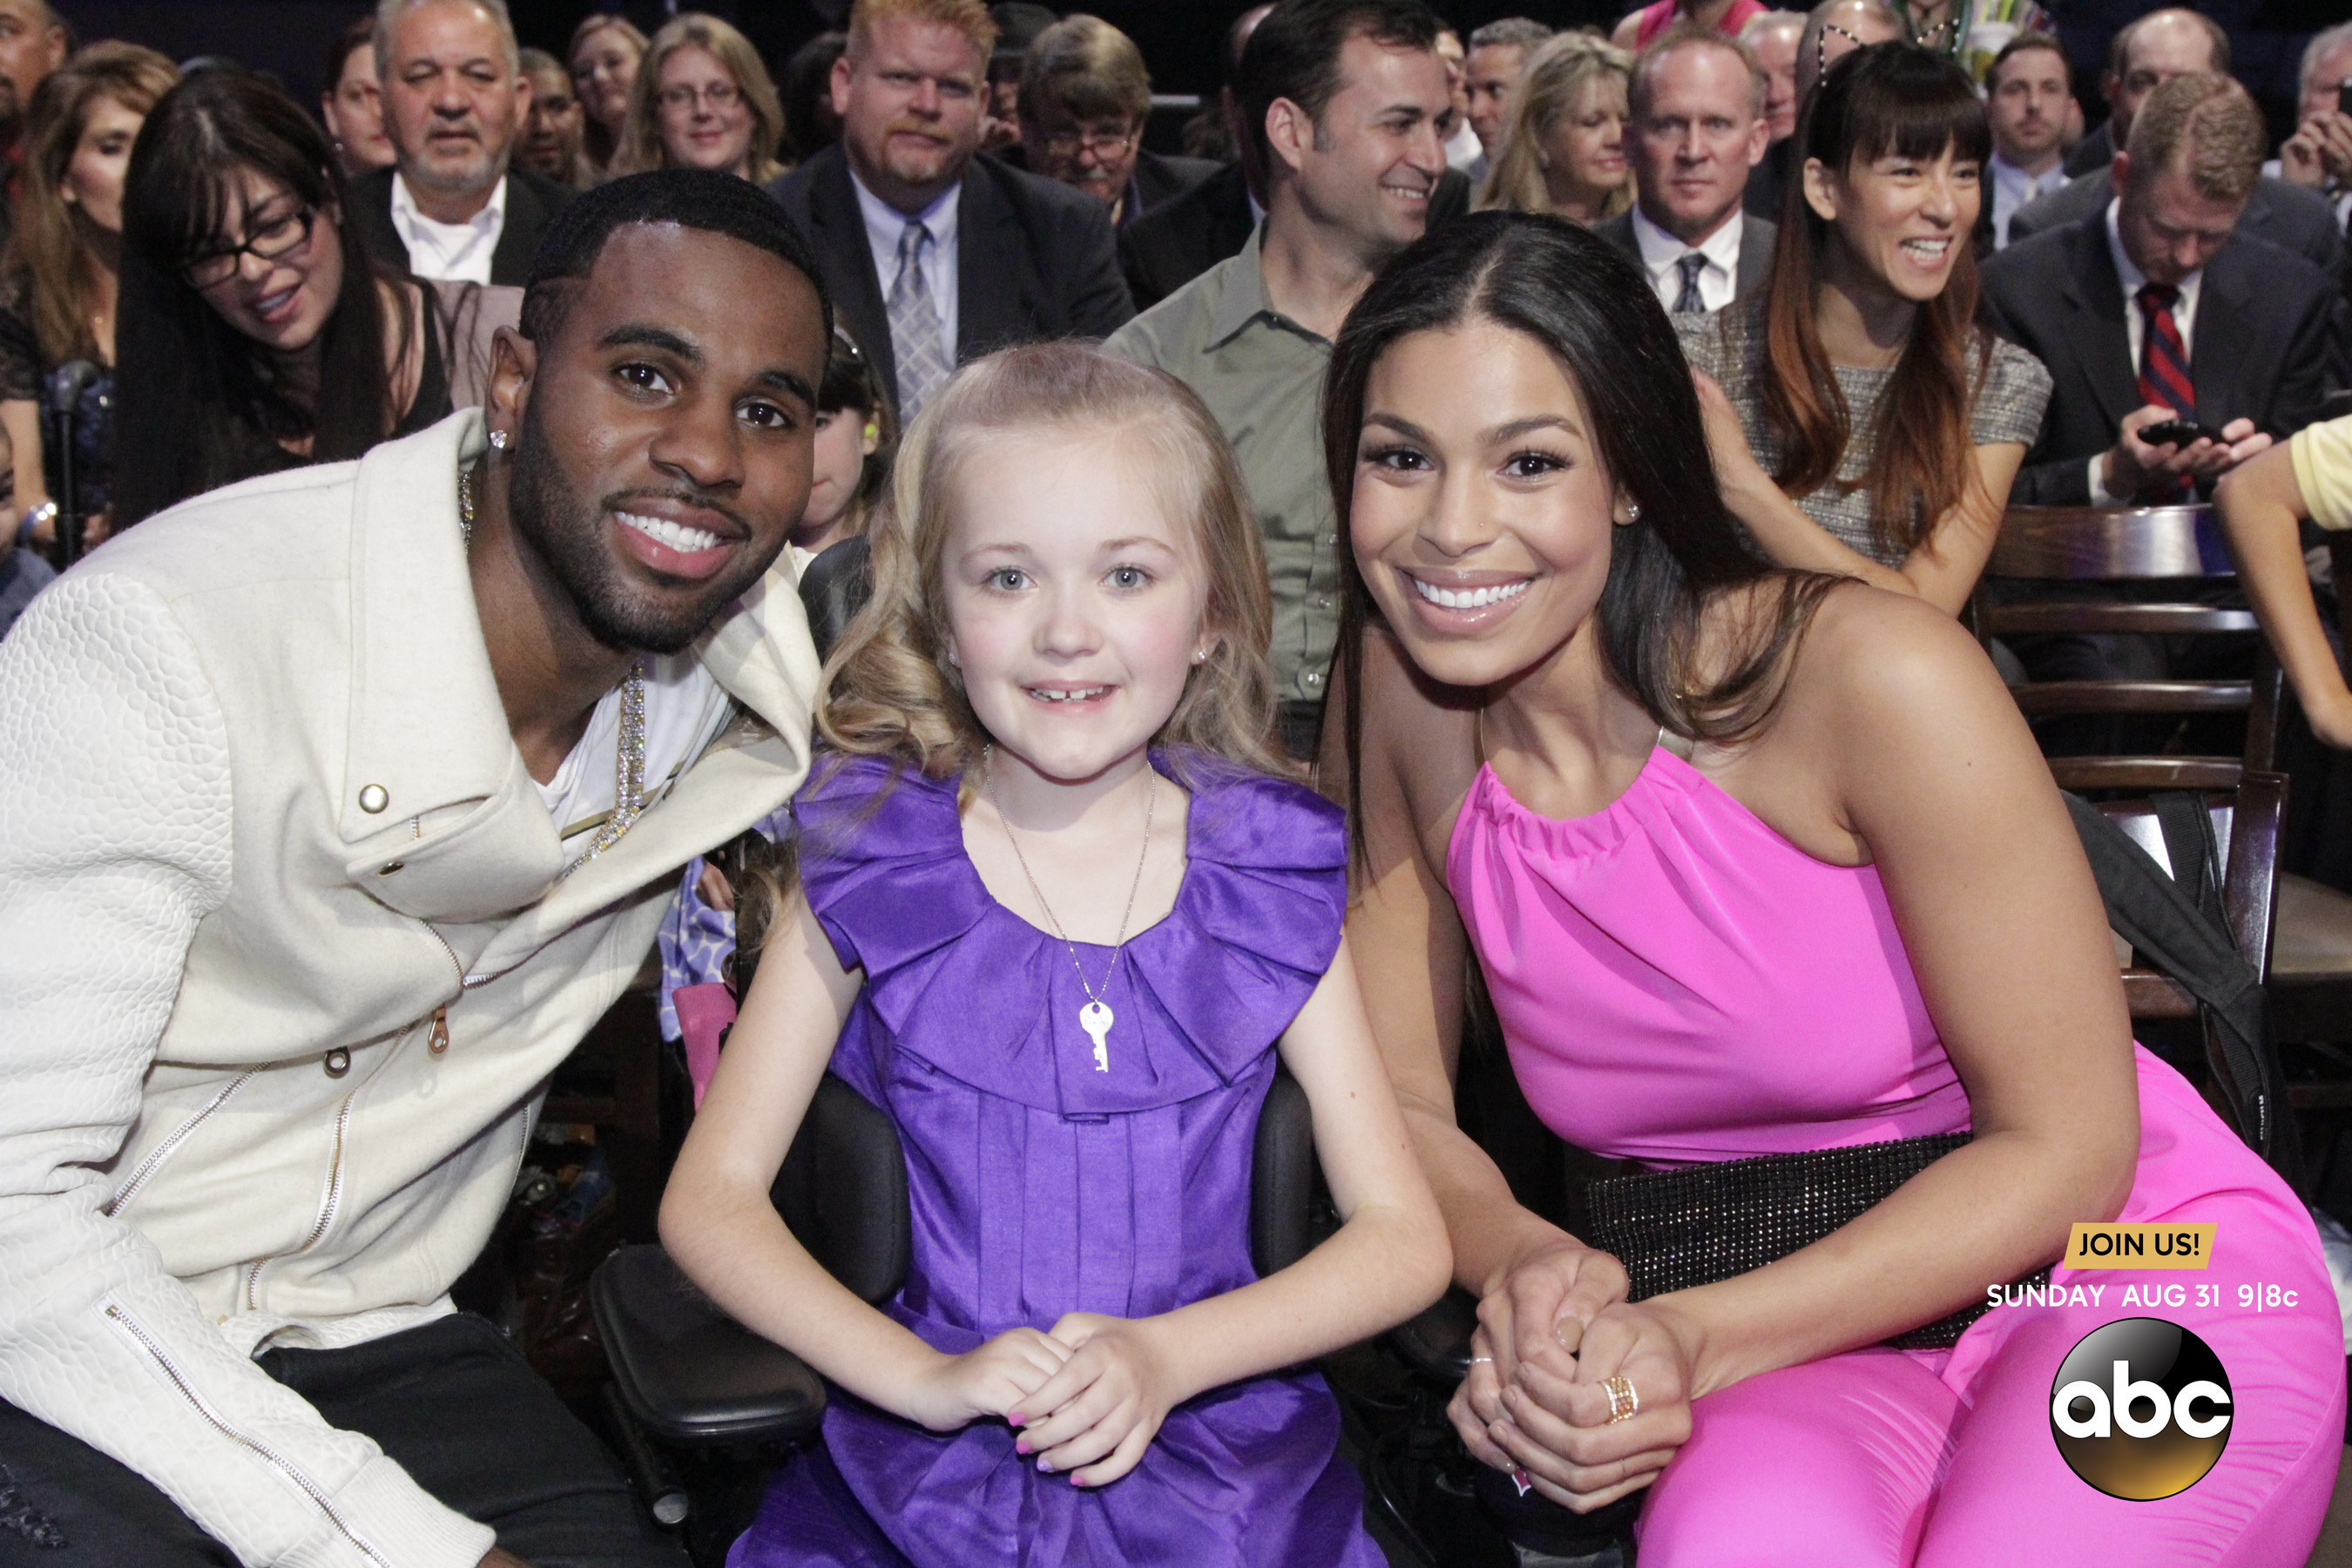 Pop star sweethearts Jordin Sparks and Jason Derulo took their support behind-the-scenes at the 2014 MDA Show of Strength Telethon to meet with children affected by muscle disease. (PRNewsFoto/Muscular Dystrophy Association)